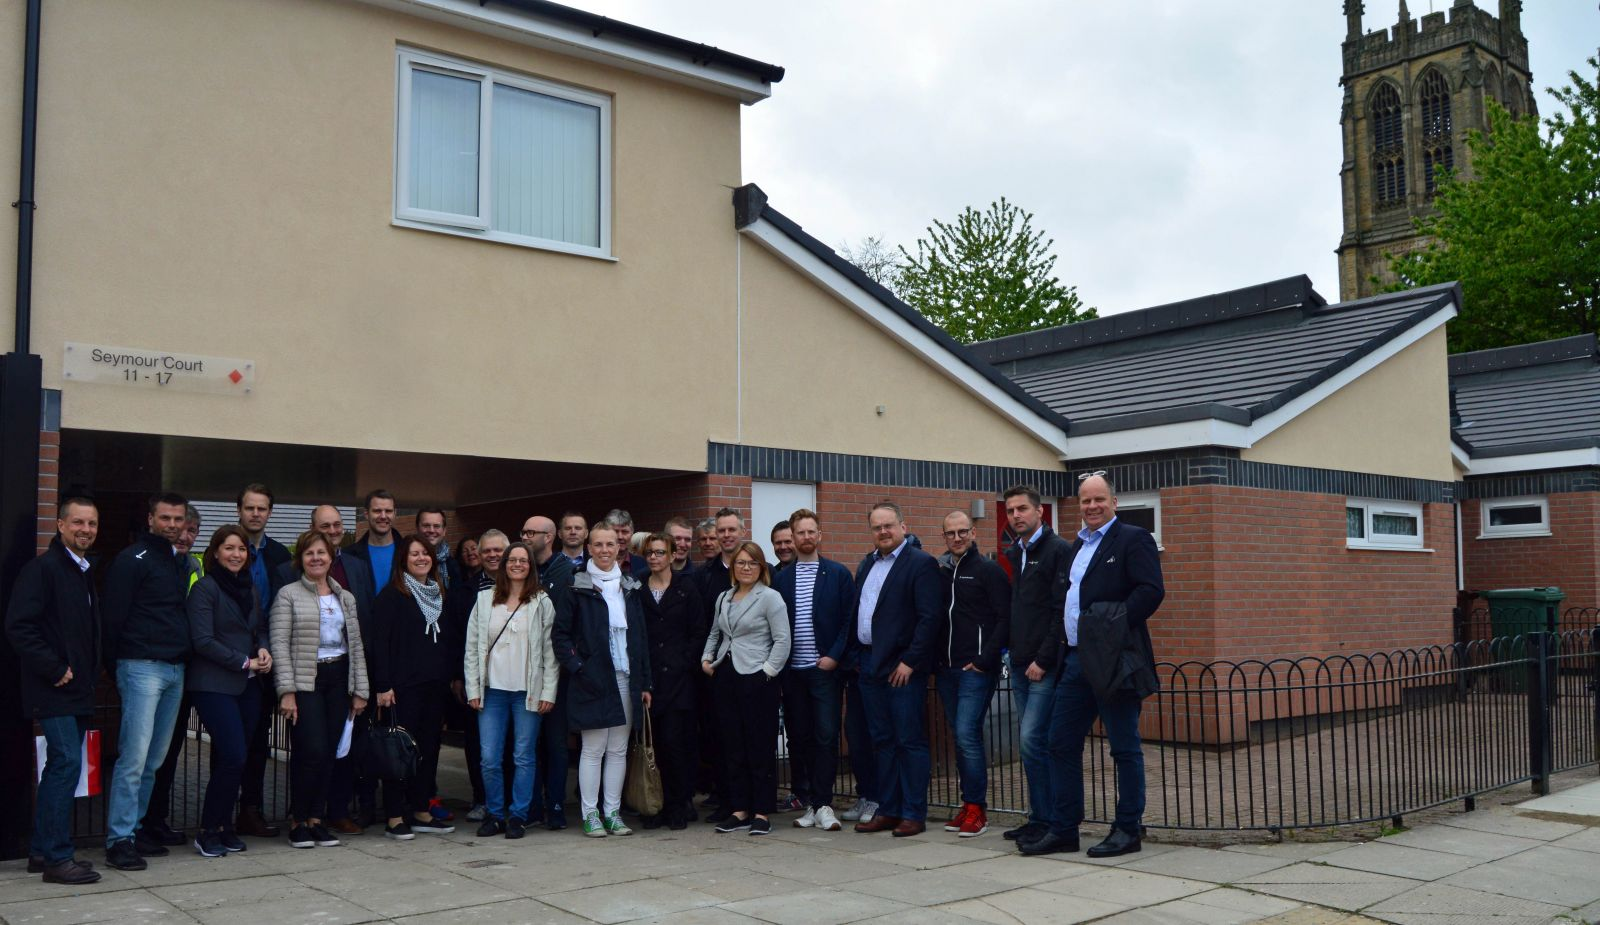 Swedish delegation visit St Thomas Estate in Radcliffe following new rendering work arranged by Six Town Housing